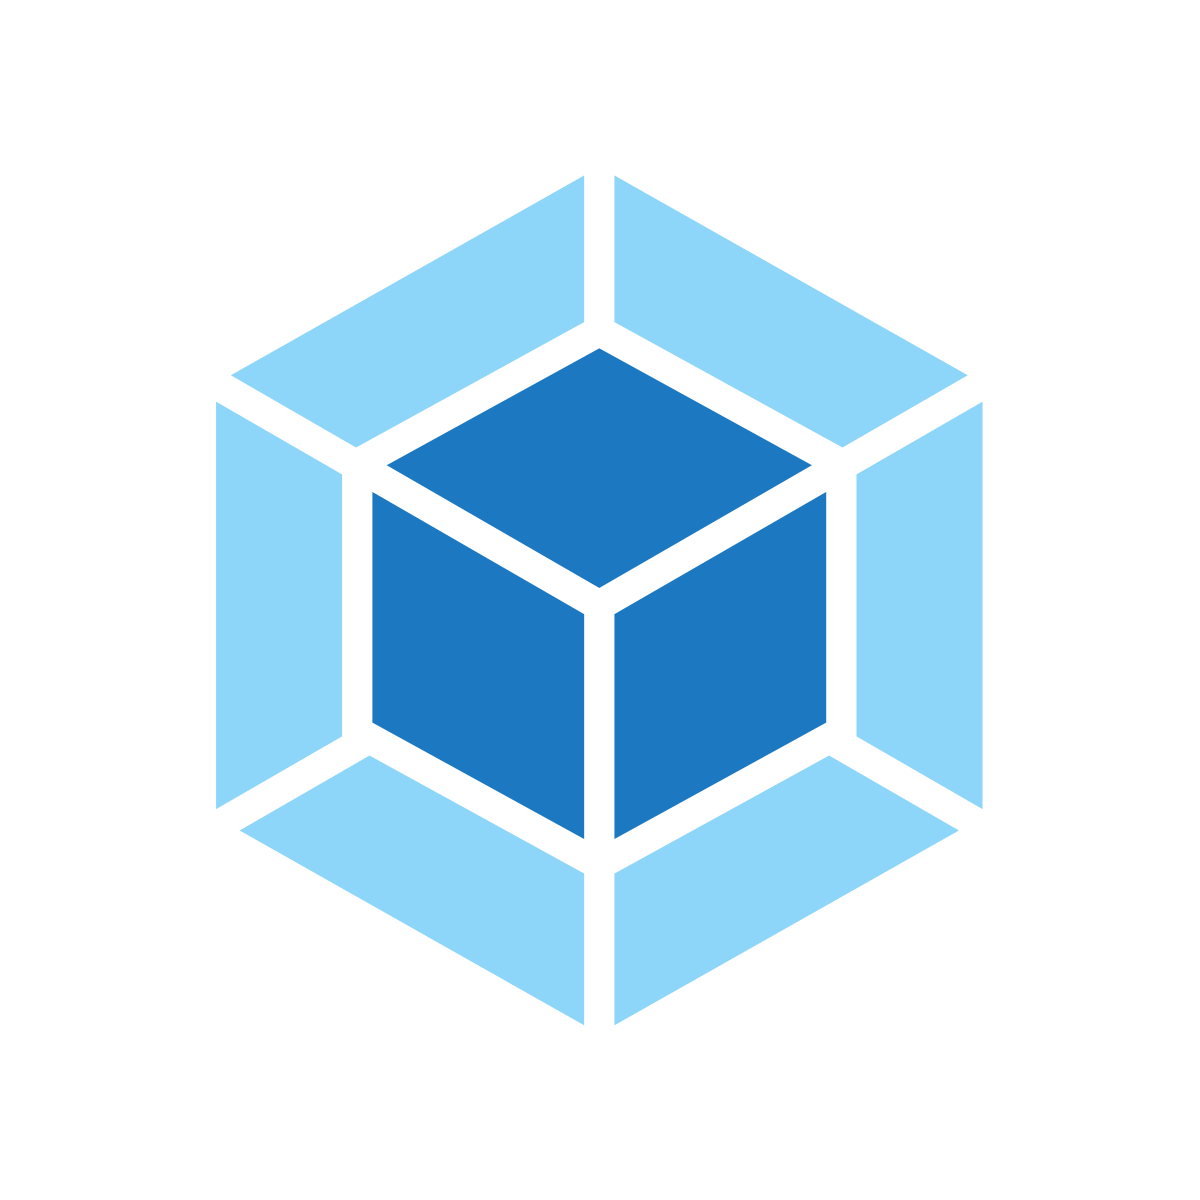 Webpack svg png. Branding guidelines icon square